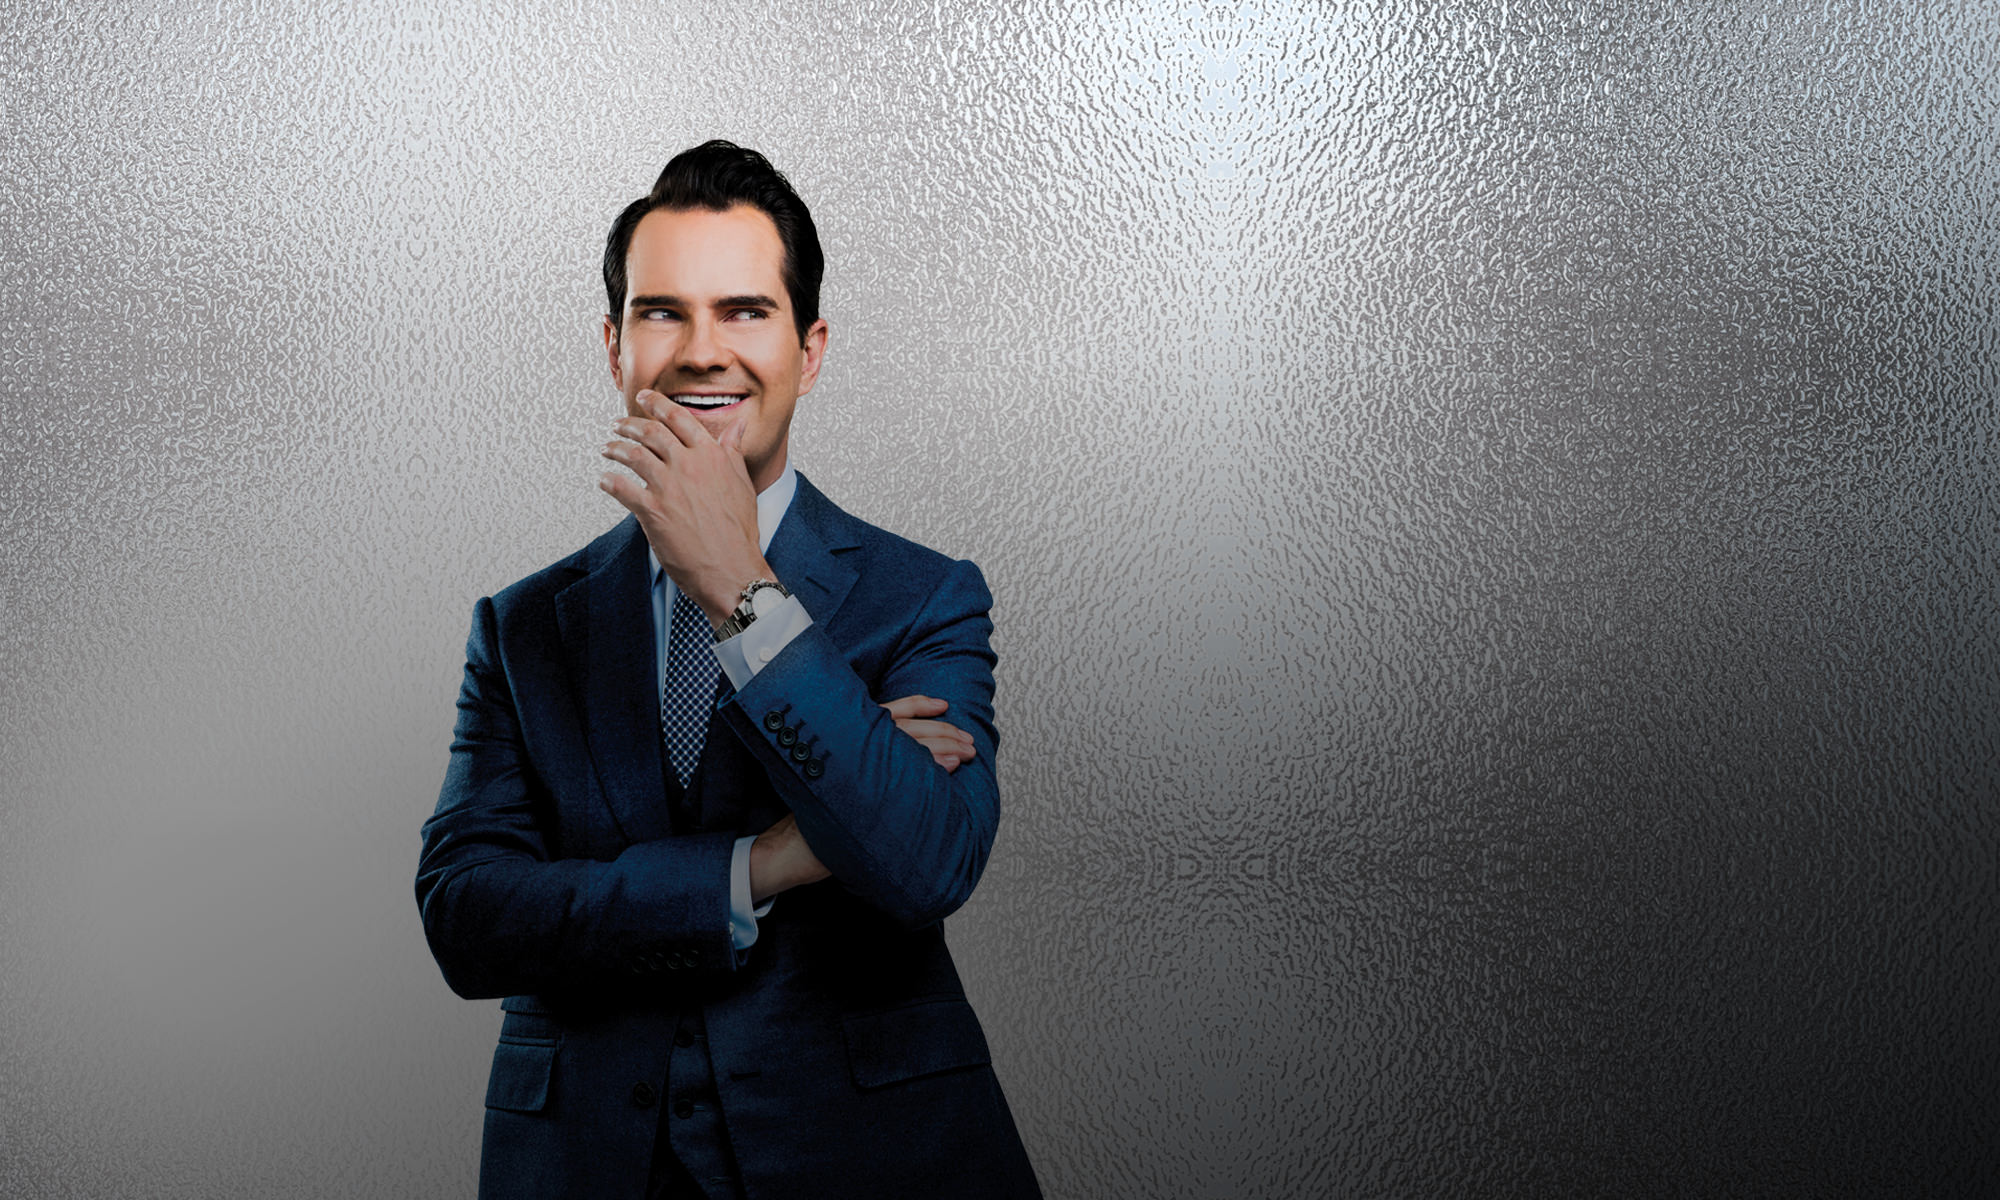 Jimmy Carr S Official Website Jimmy Carr